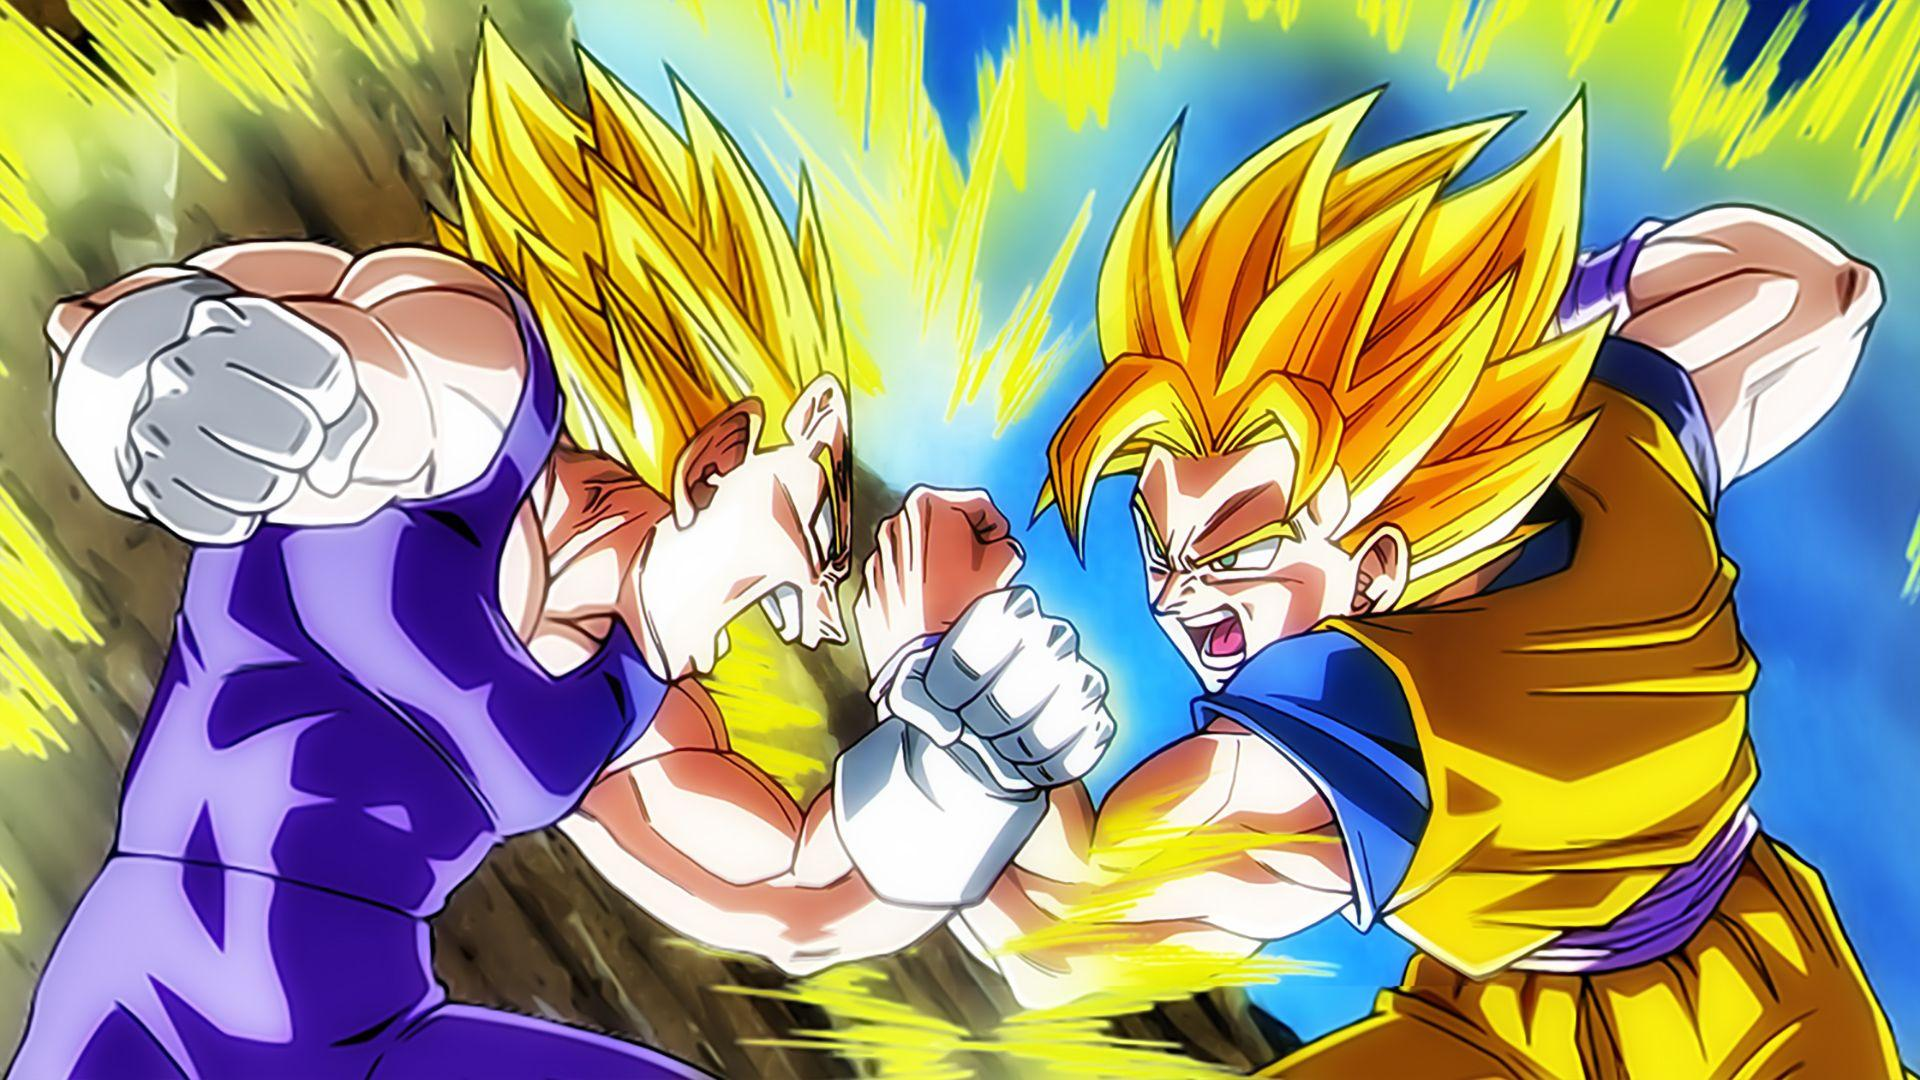 Super Saiyan Goku Vs Vegeta HD Wallpaper